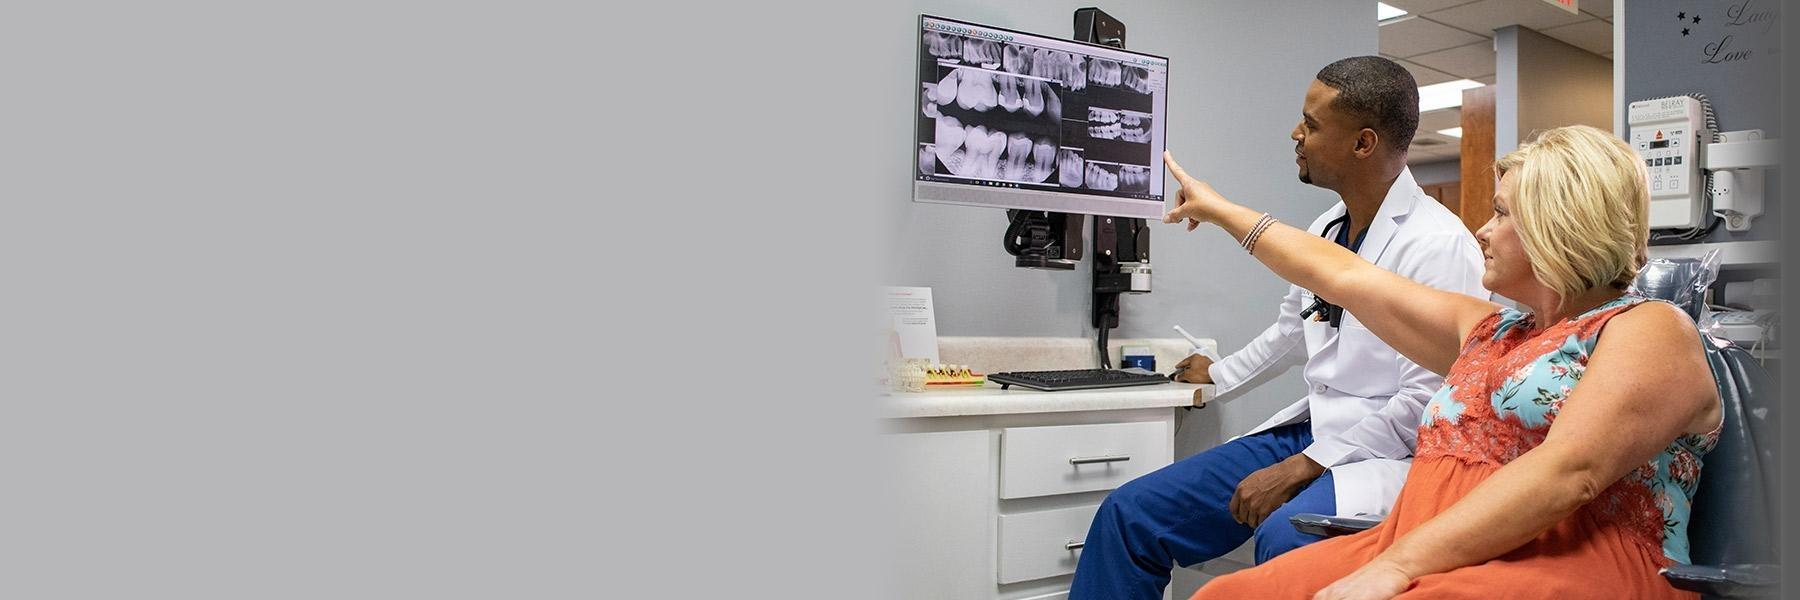 Dr. King & Patient | Fix Broken Teeth Huntsville AL